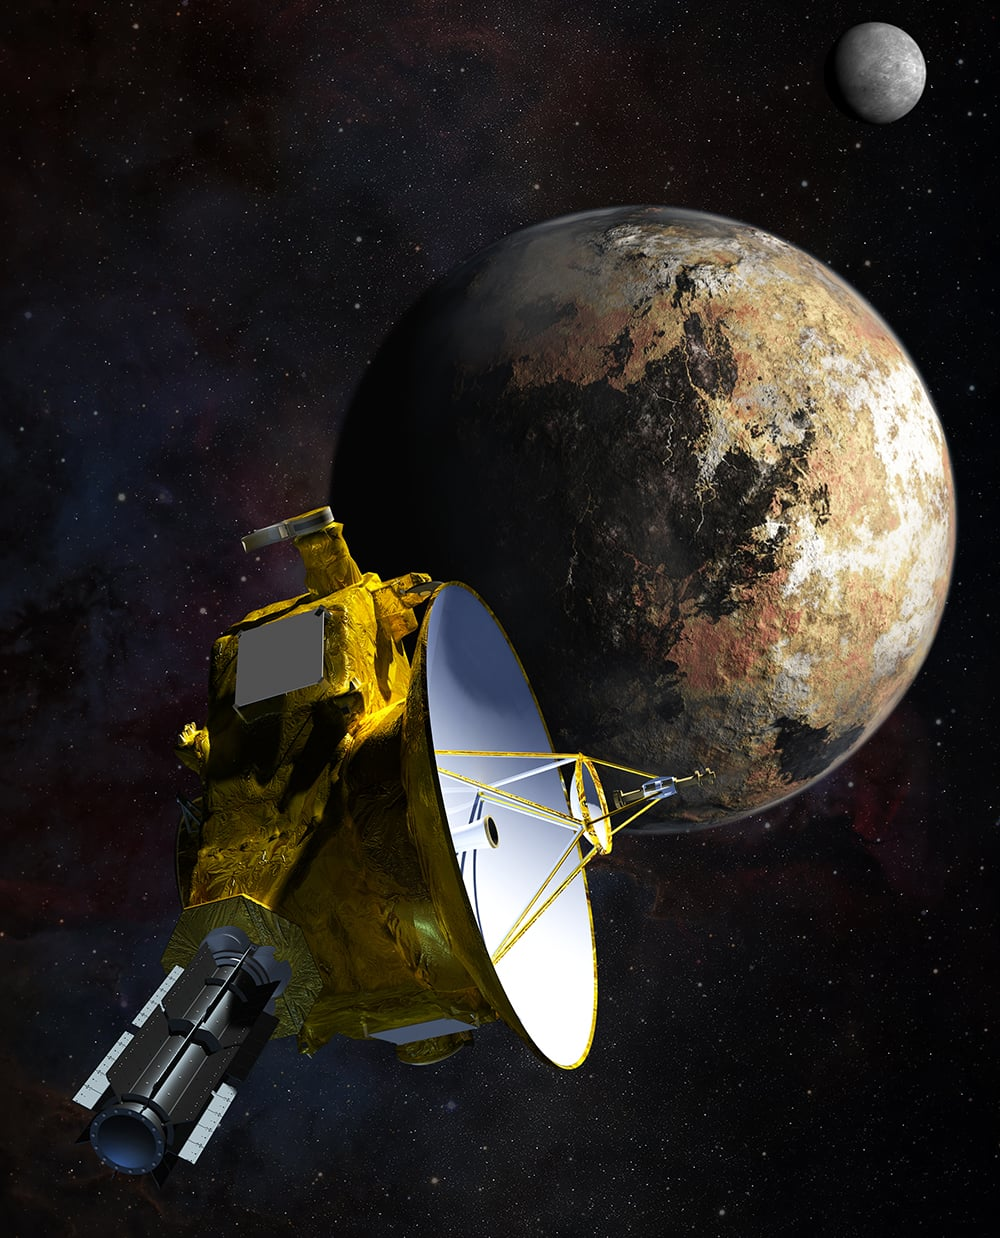 An artist's depiction of the New Horizons' proximity to Pluto and Charon. (wikipedia)